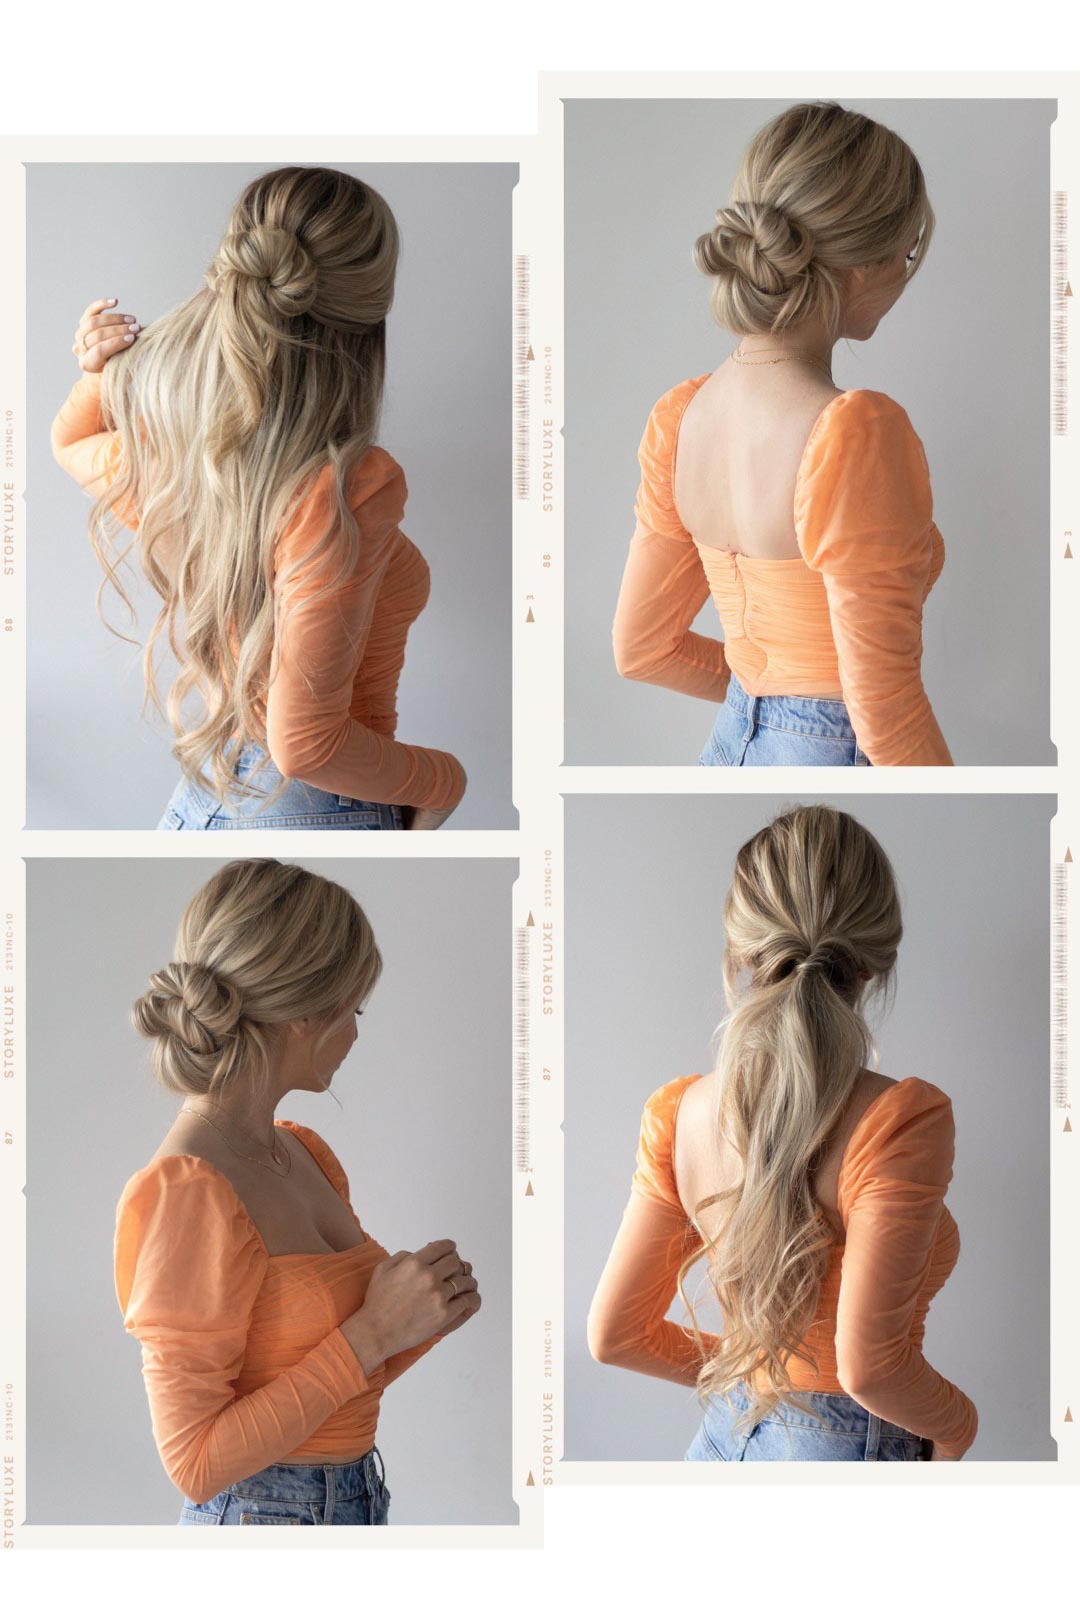 3 TRENDY AND EASY HAIRSTYLES FOR 2020 | www.alexgaboury.com